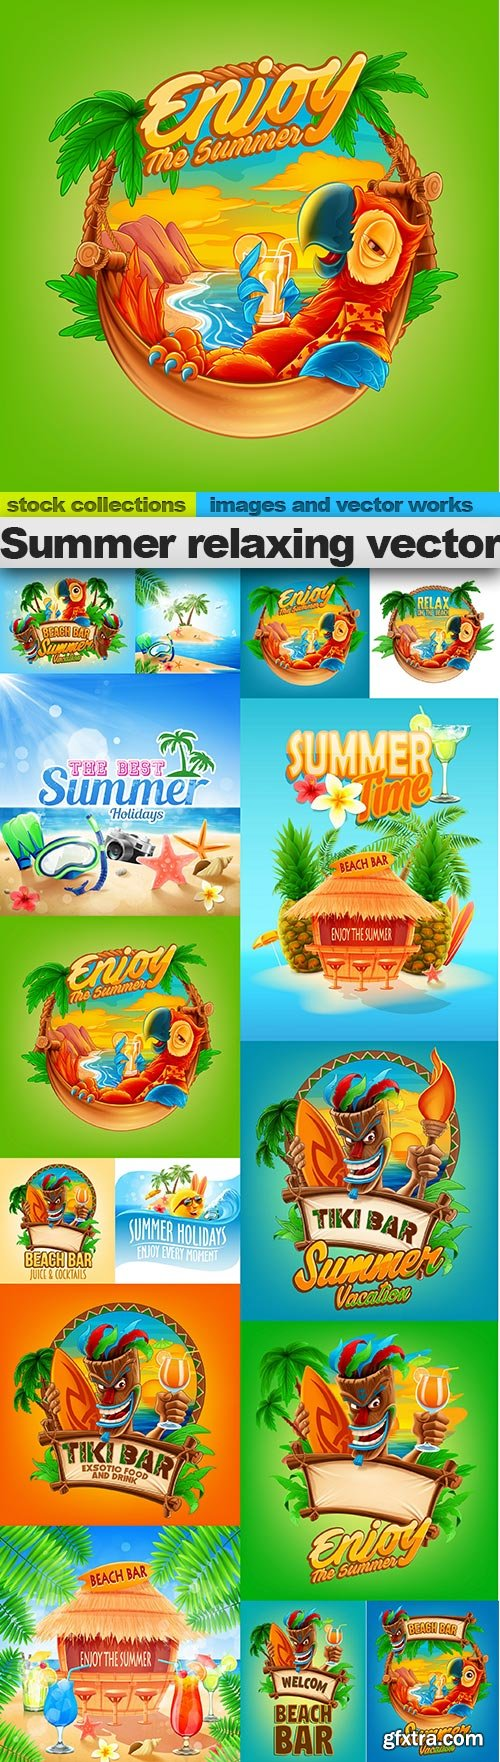 Summer relaxing vector, 15 X EPS